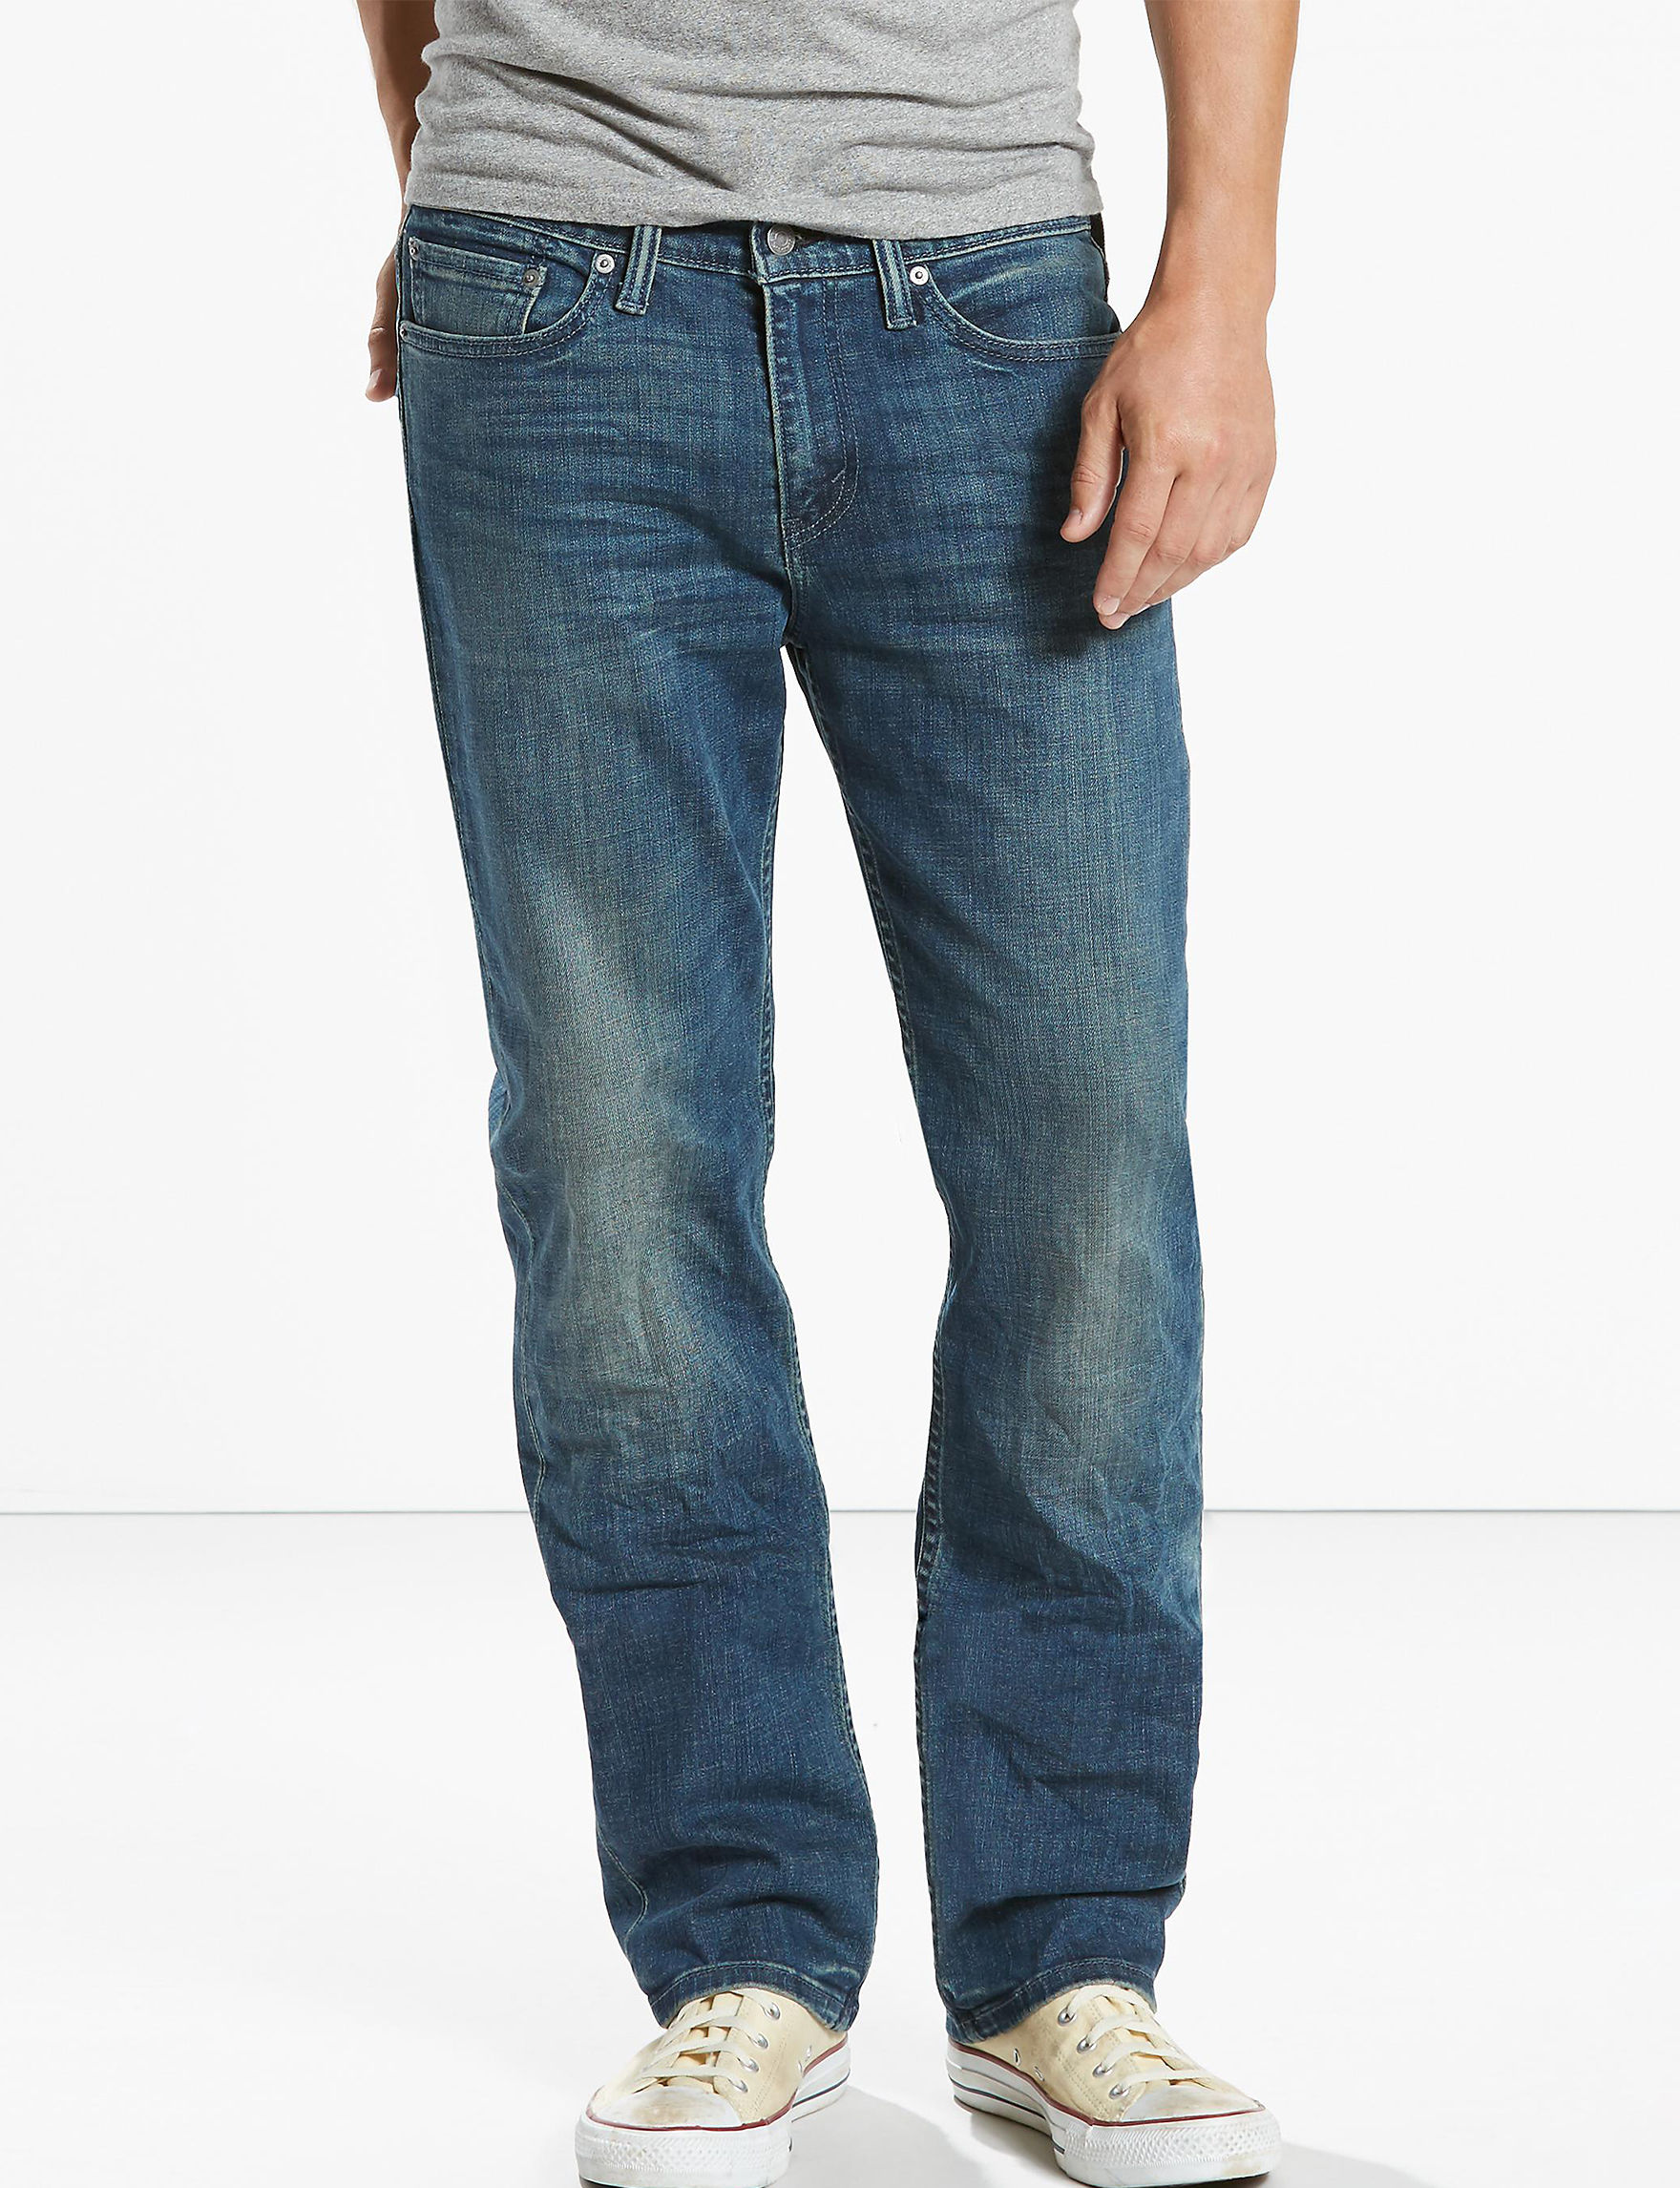 Levi's Medium Wash Straight